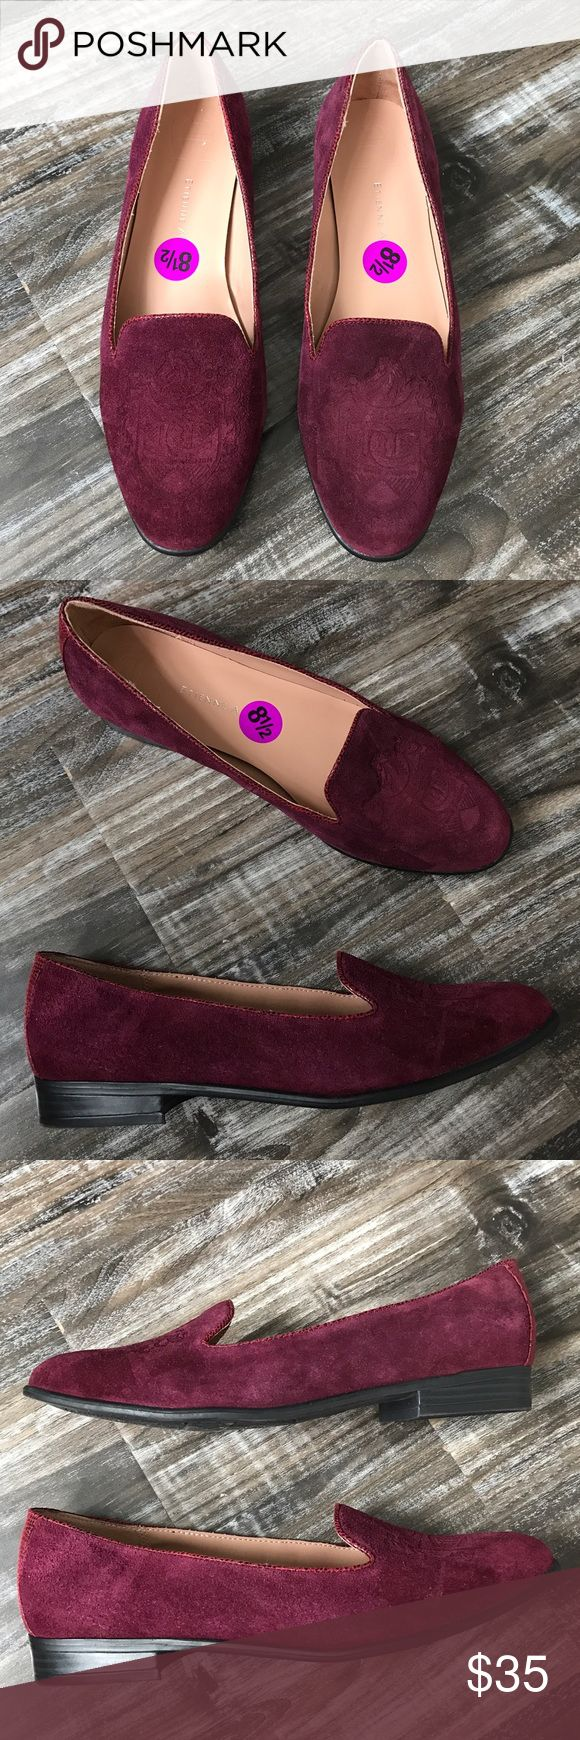 Etienne Aigner Kathy Purple Smoking Slippers Flats These woman's flats are brand new without the box. They're a size 8.5 and made of genuine Suede. They have great arch support and are very comfortable. Etienne Aigner Shoes Flats & Loafers